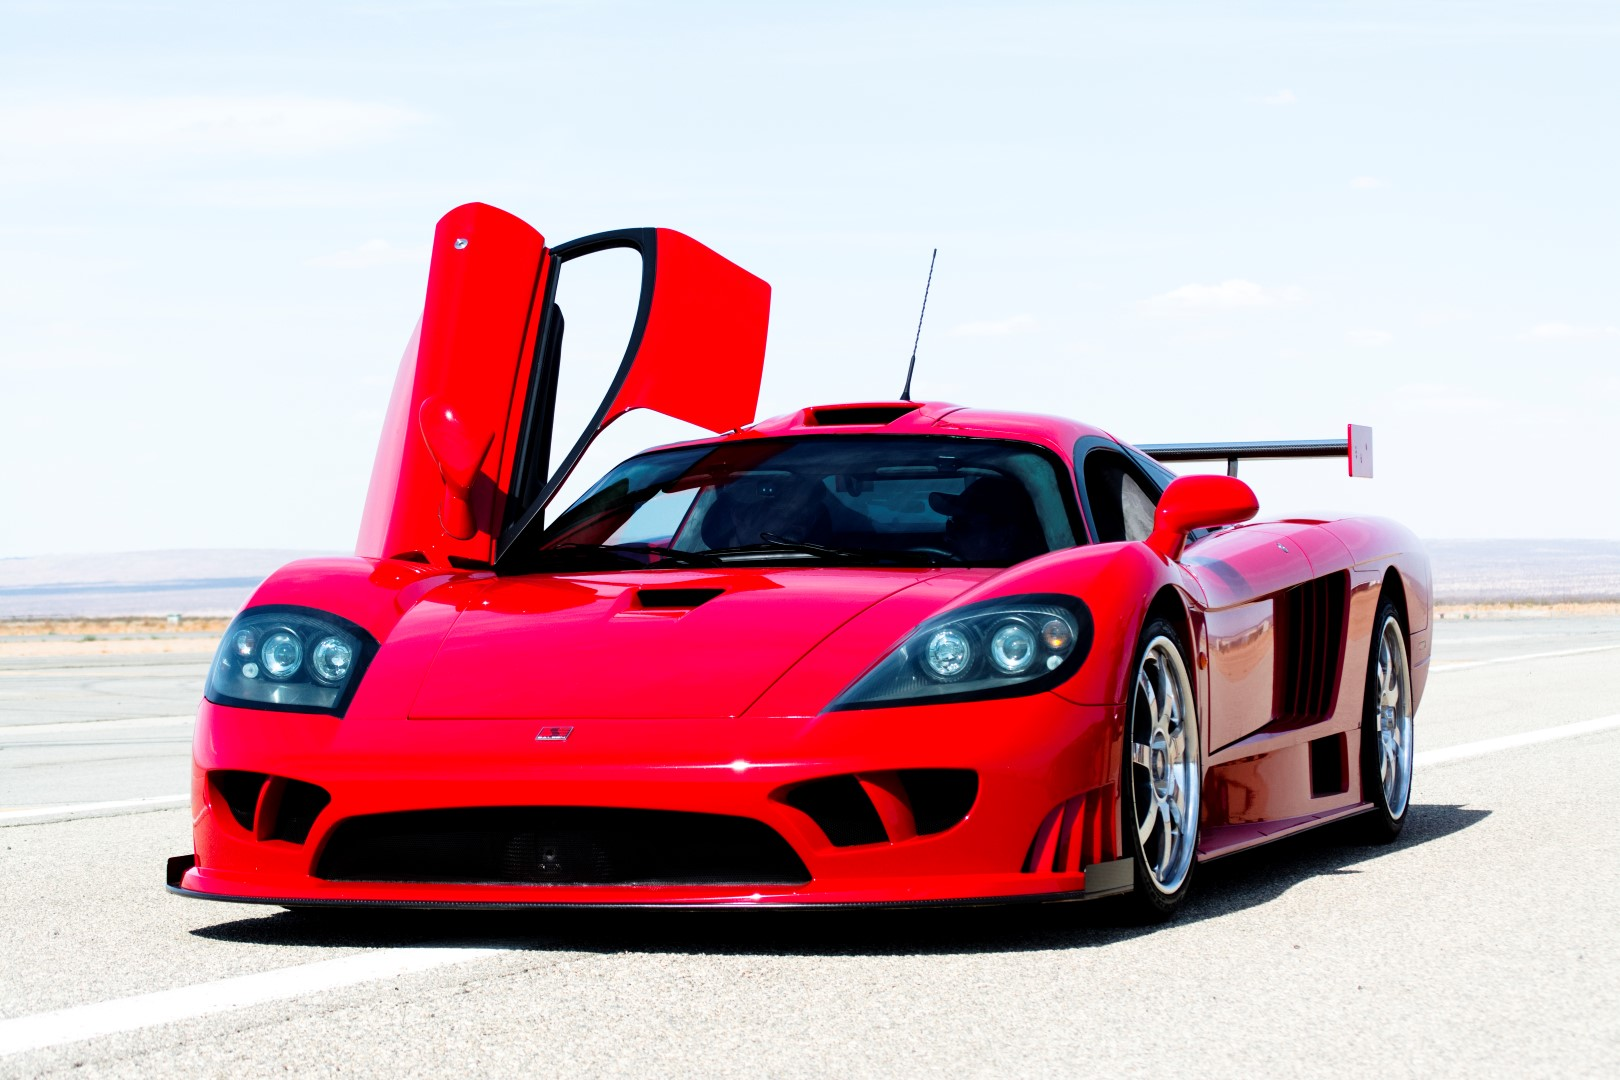 The 10 Fastest Cars In The World